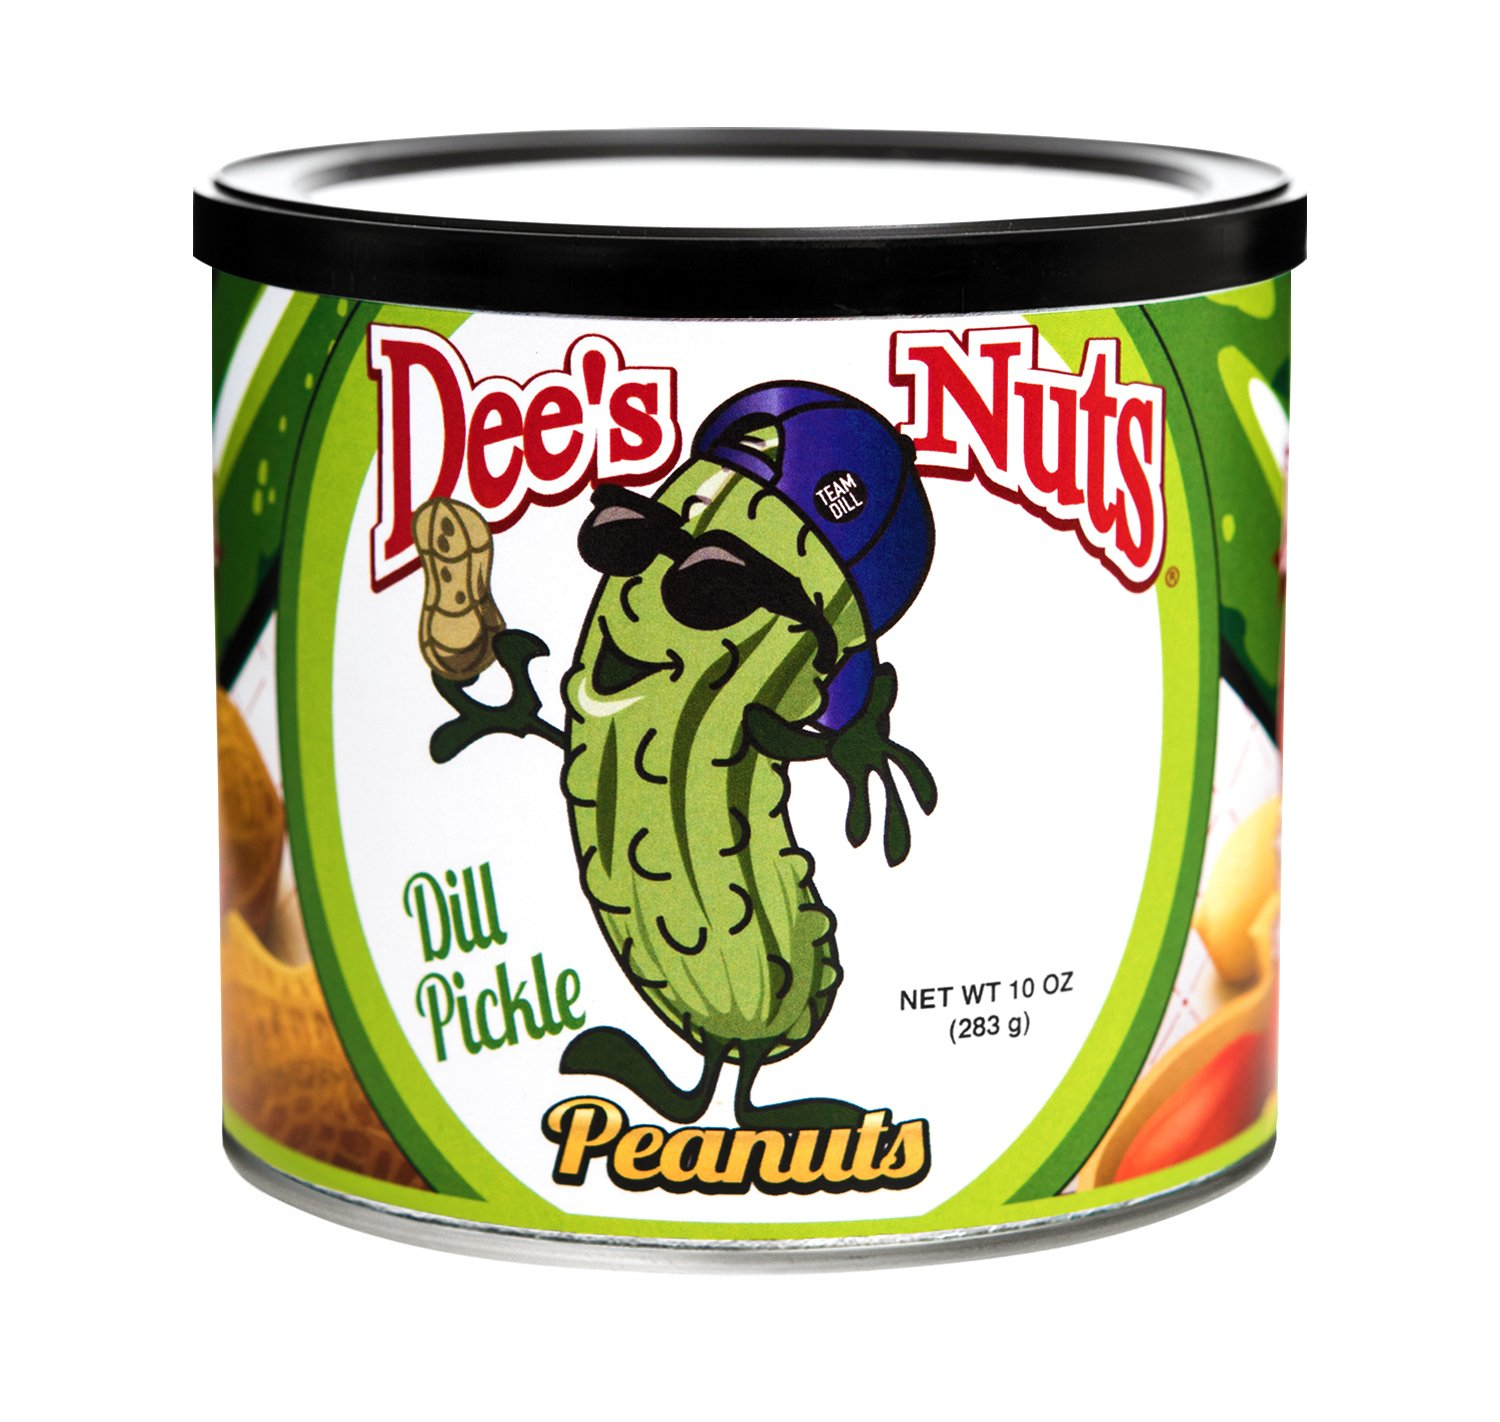 Dee's Nuts Dill Pickle Gourmet Peanuts, 10-Ounce